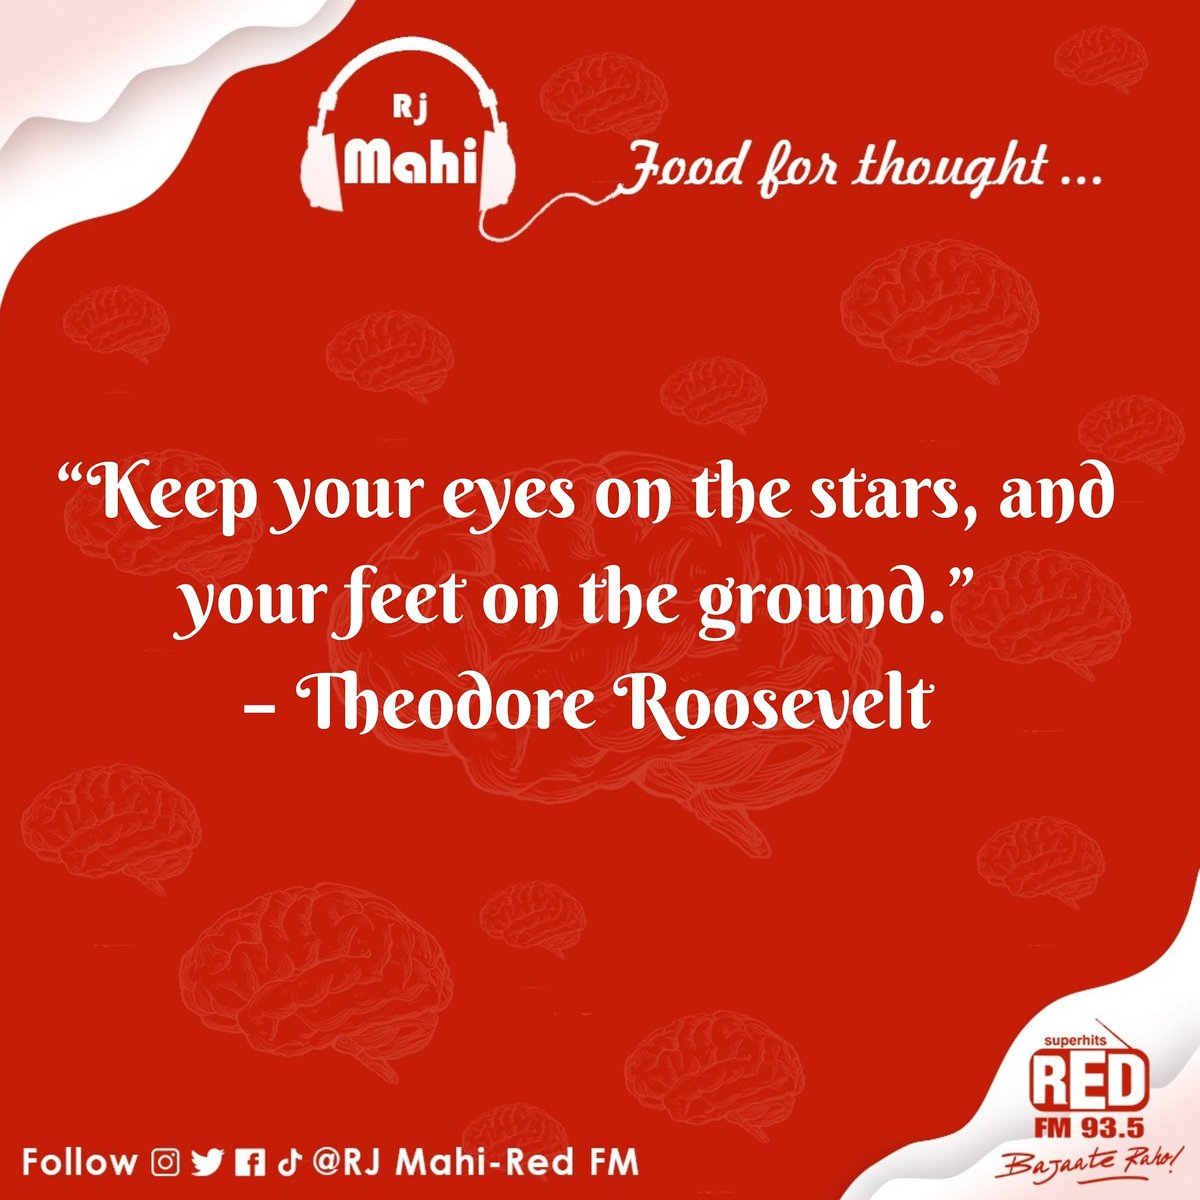 Be grounded...  #wordsofwisdom #quotesoftheday #qoute #quotation #words #quotesgram #quotesdaily #quoted #dailyquotes #lifequotes #begrateful #begrounded #powerful #postivity #being #selfrespect #myown #struggle #expansive #onelifetolive #noneed #happysoul #rjmahiredfmpic.twitter.com/JfMCVAaAo6